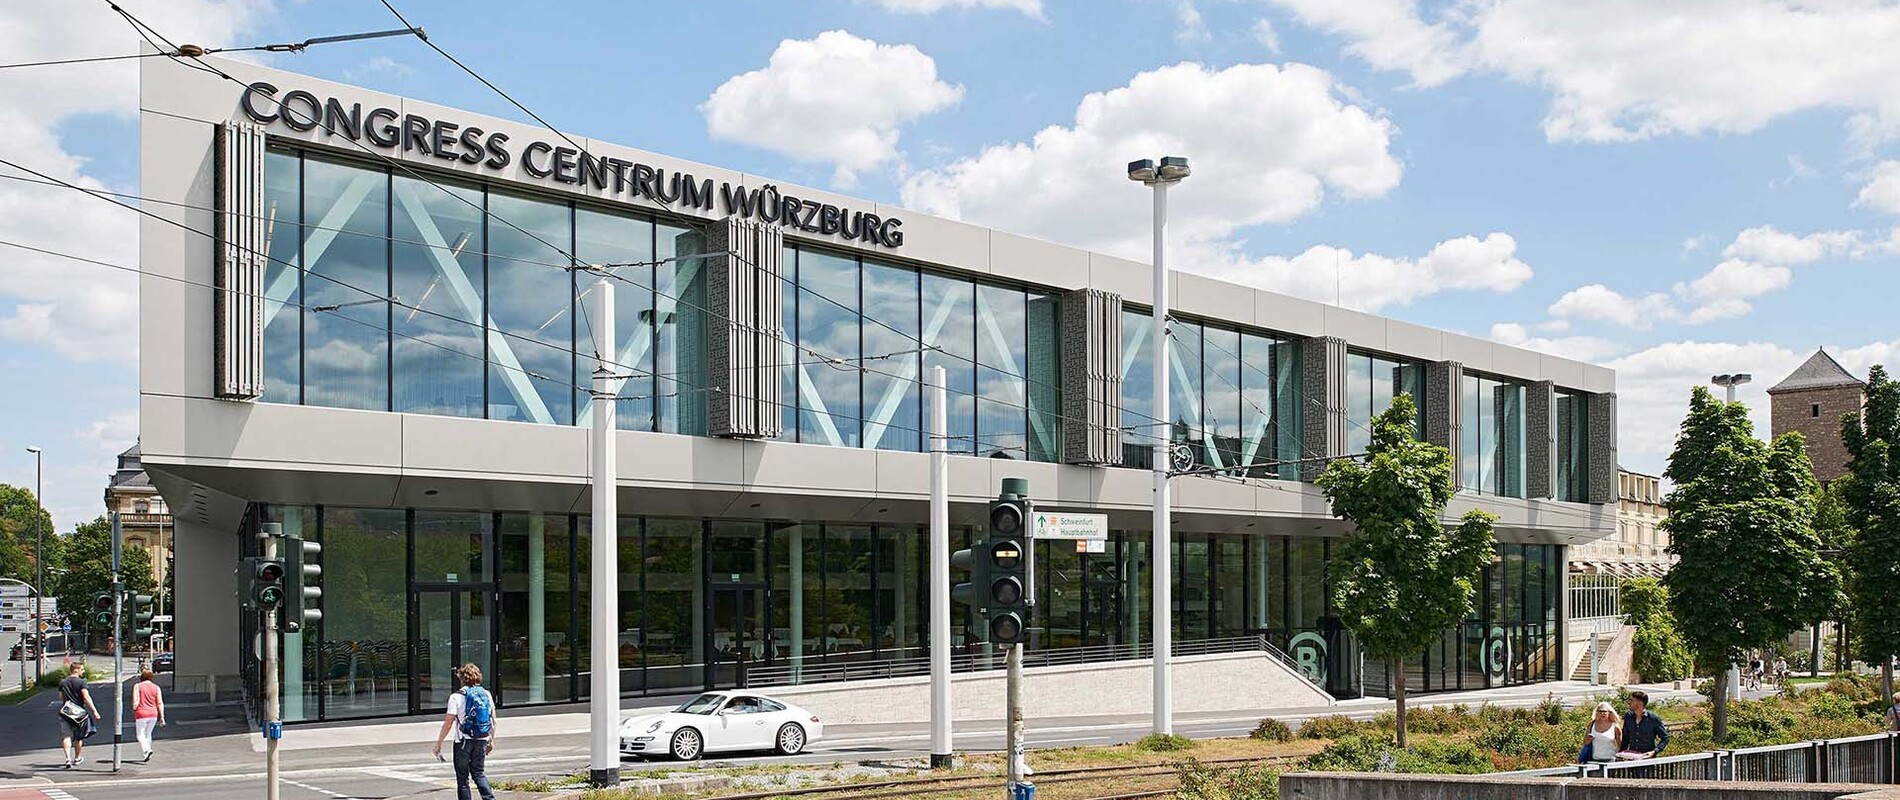 Congress Centrum - enlargement and conversion - Würzburg - facade of the entrance situation and street area